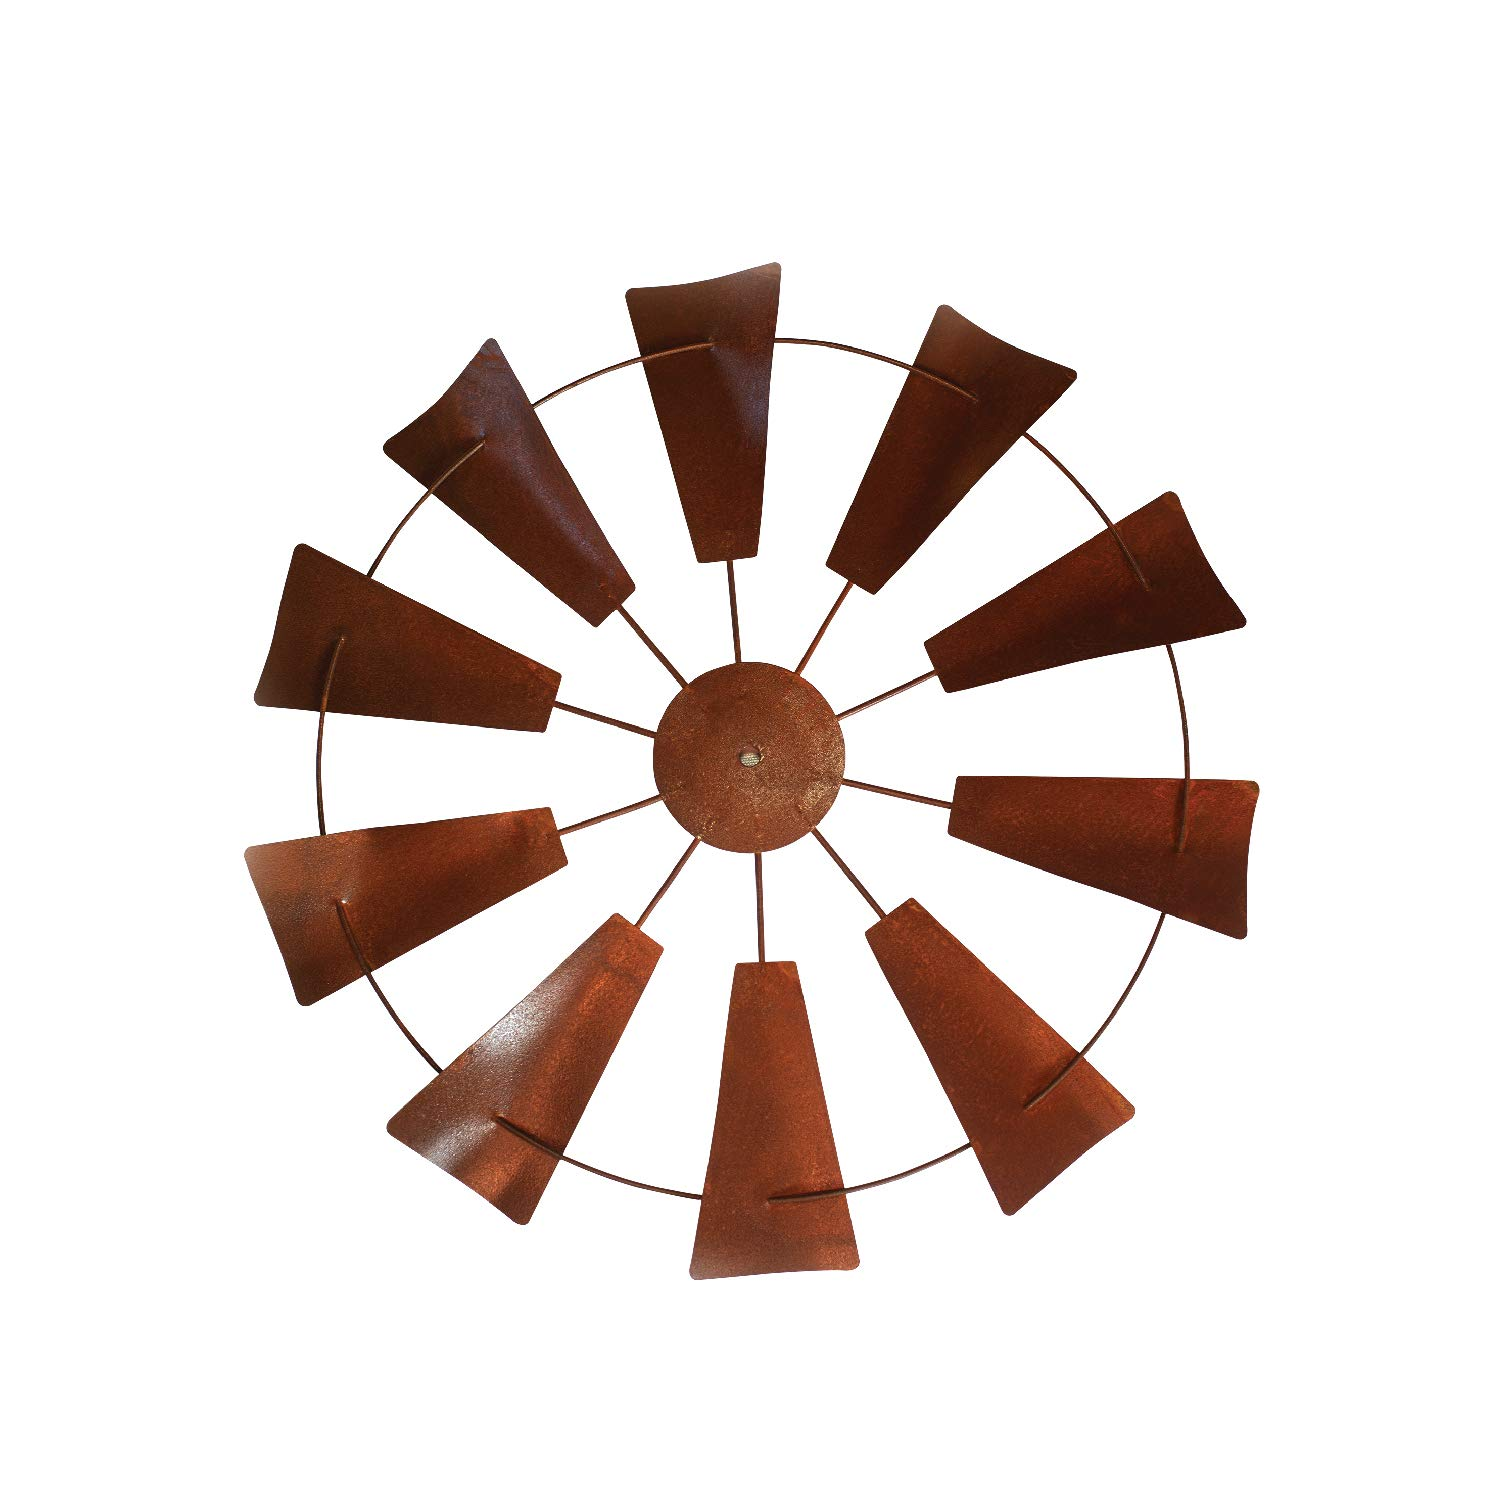 Rustic farmhouse windmill wall decor 20 rusty round metal country magnolia farm wind mill home decor windmills design accents in joanna gaines